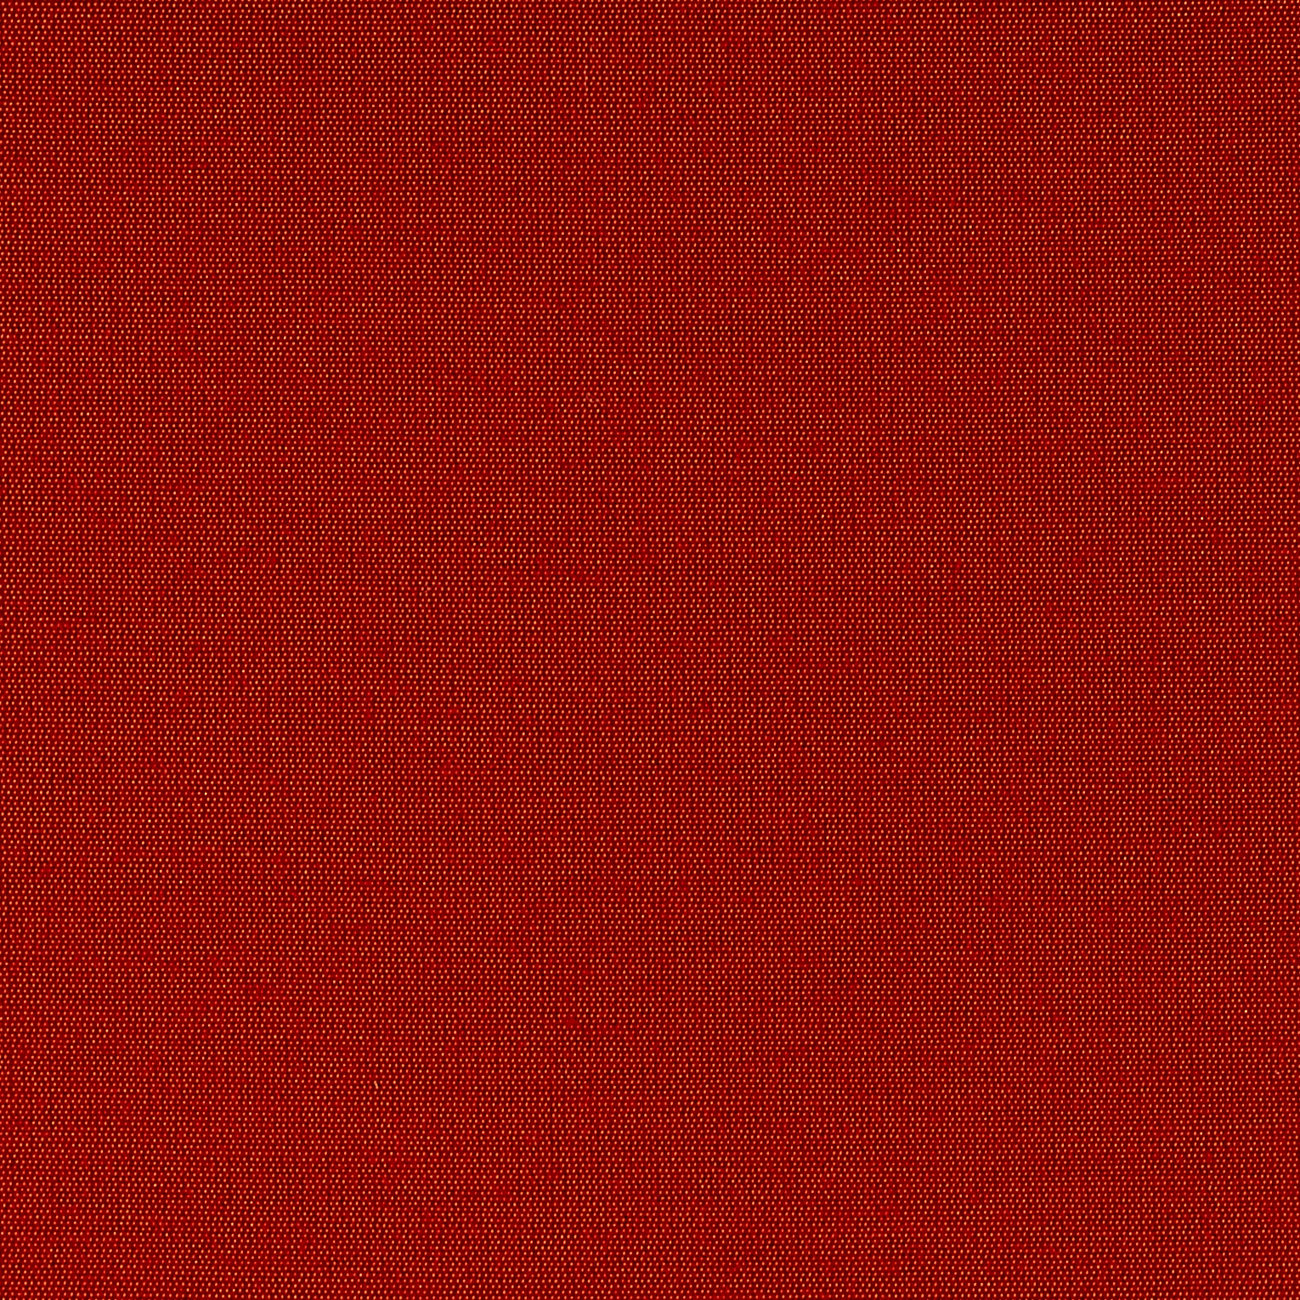 Image of 03375 Solid Chili Fabric